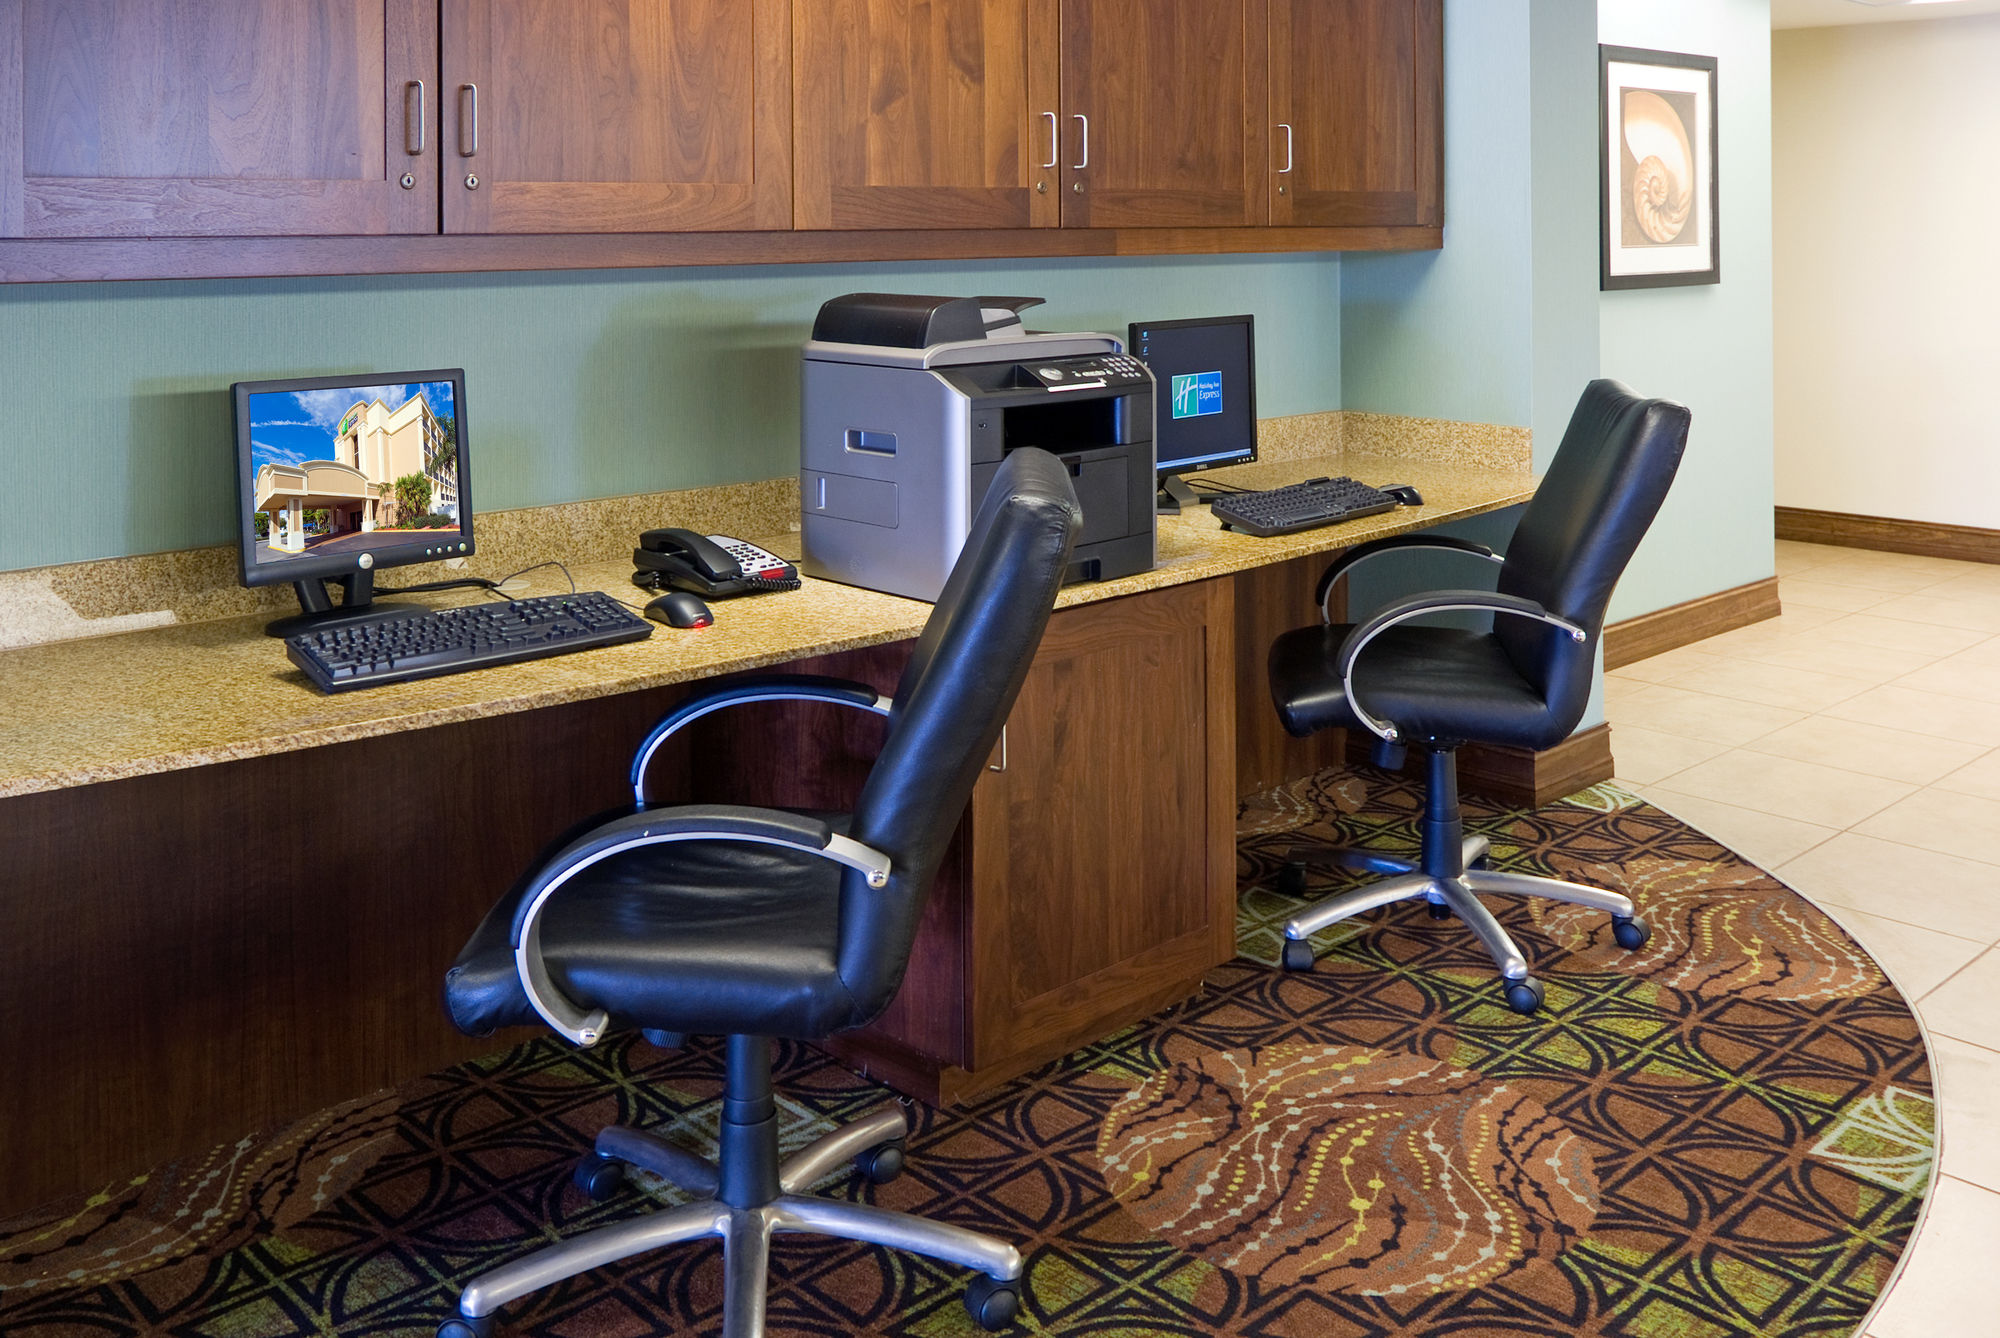 Holiday Inn Express Cape Coral-Fort Myers Area in Cape Coral, FL